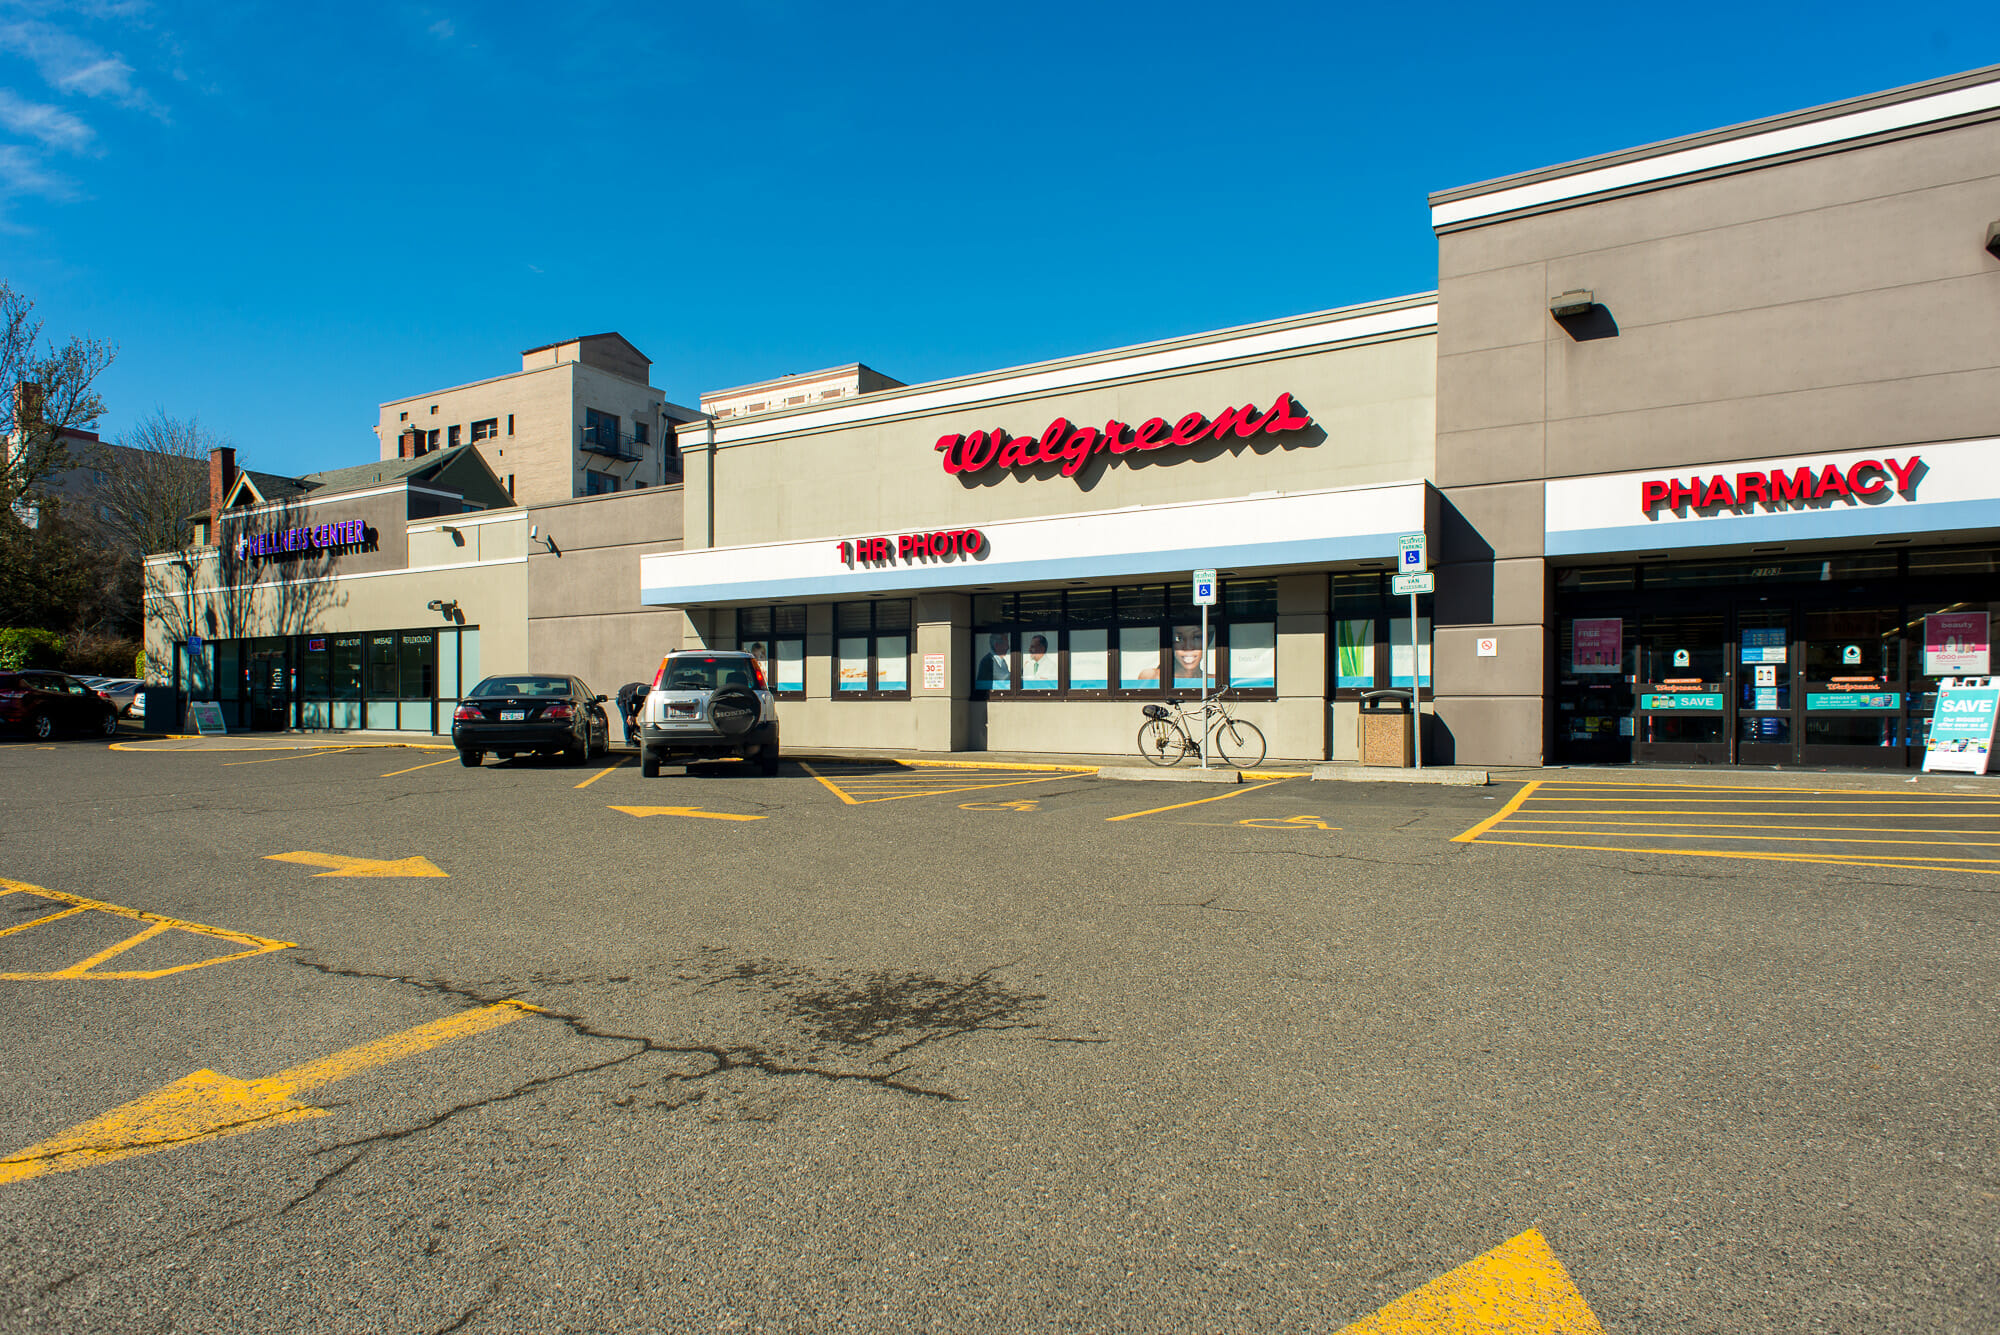 Walgreens and Wellness Center at Stadium Shopping Center